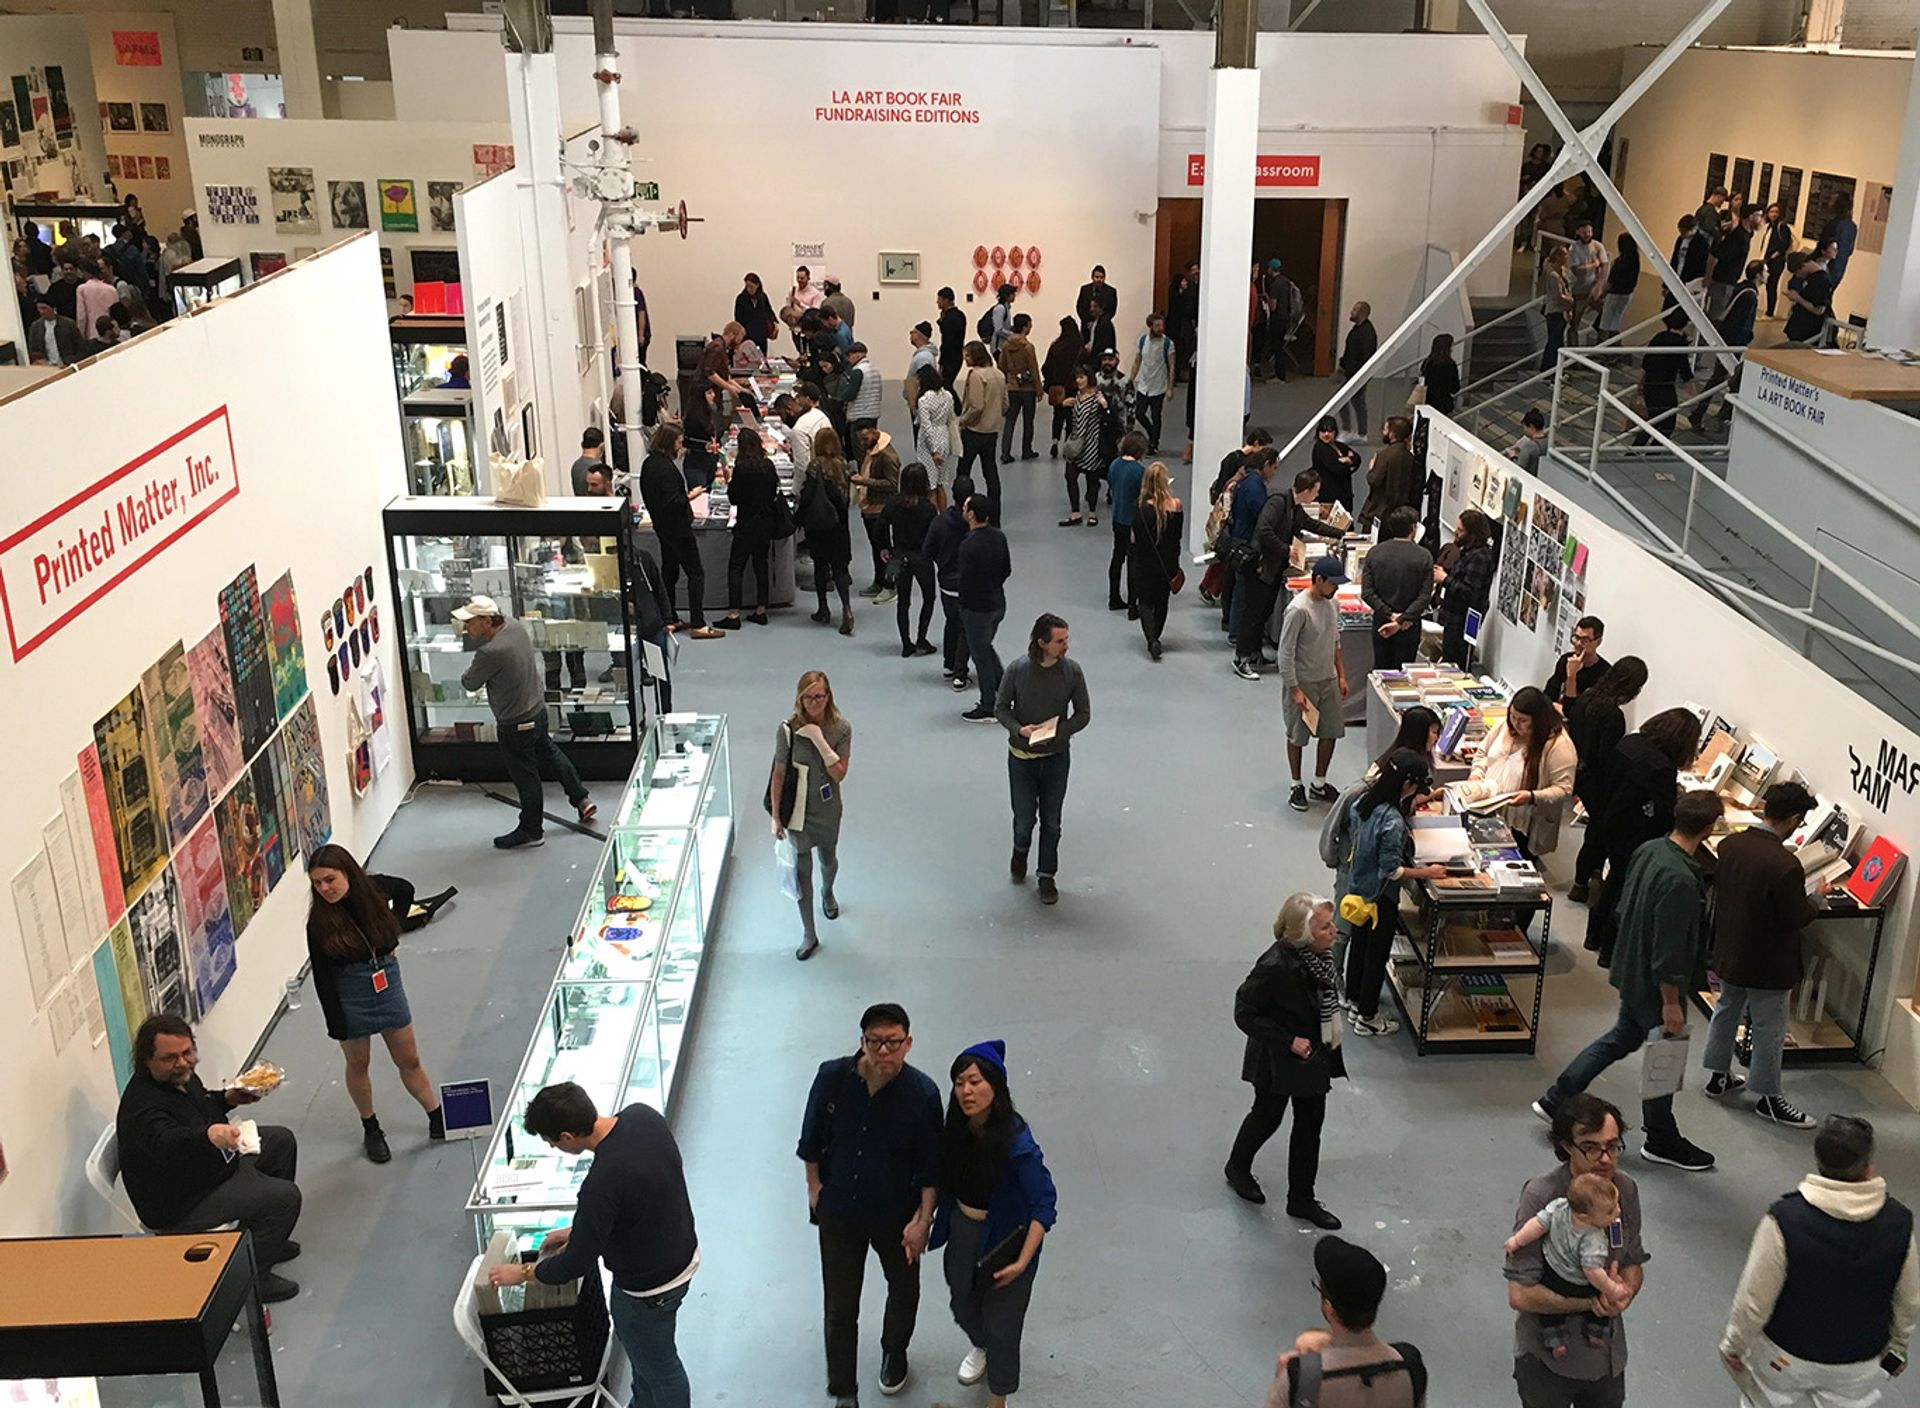 A view of the 2017 LA Art Book Fair at the Geffen Contemporary branch of the Museum of Contemporary Art, Los Angeles Jori Finkel